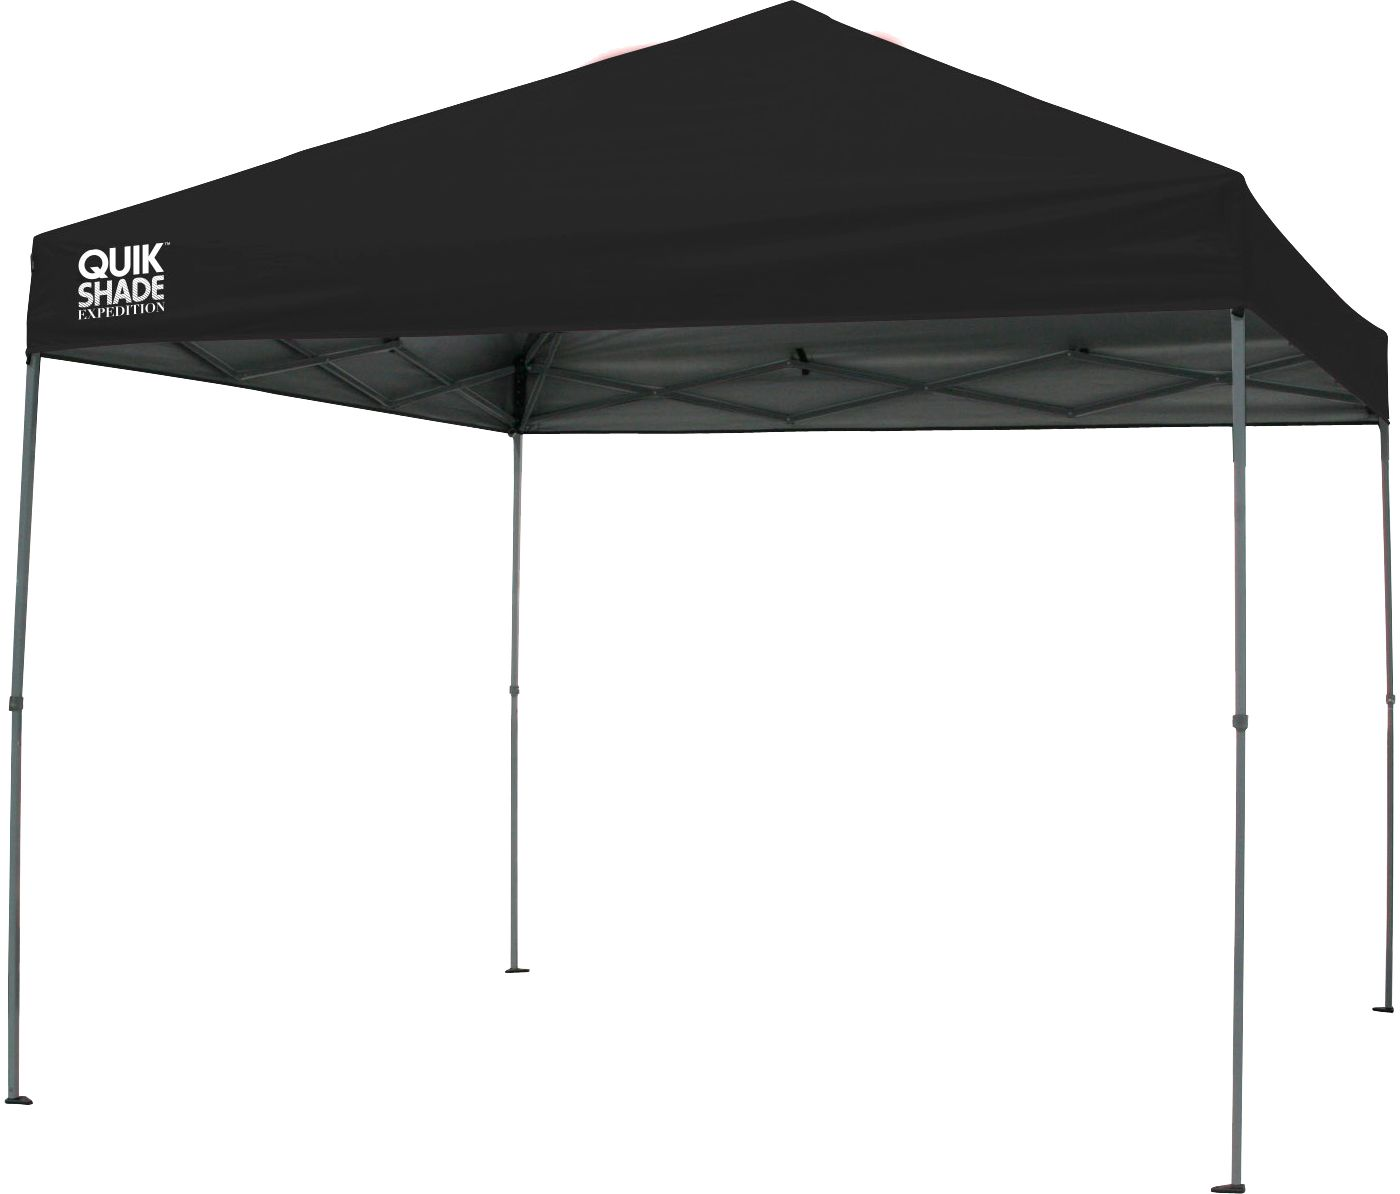 Quik Shade 10' x 10' Expedition 100 Instant Canopy